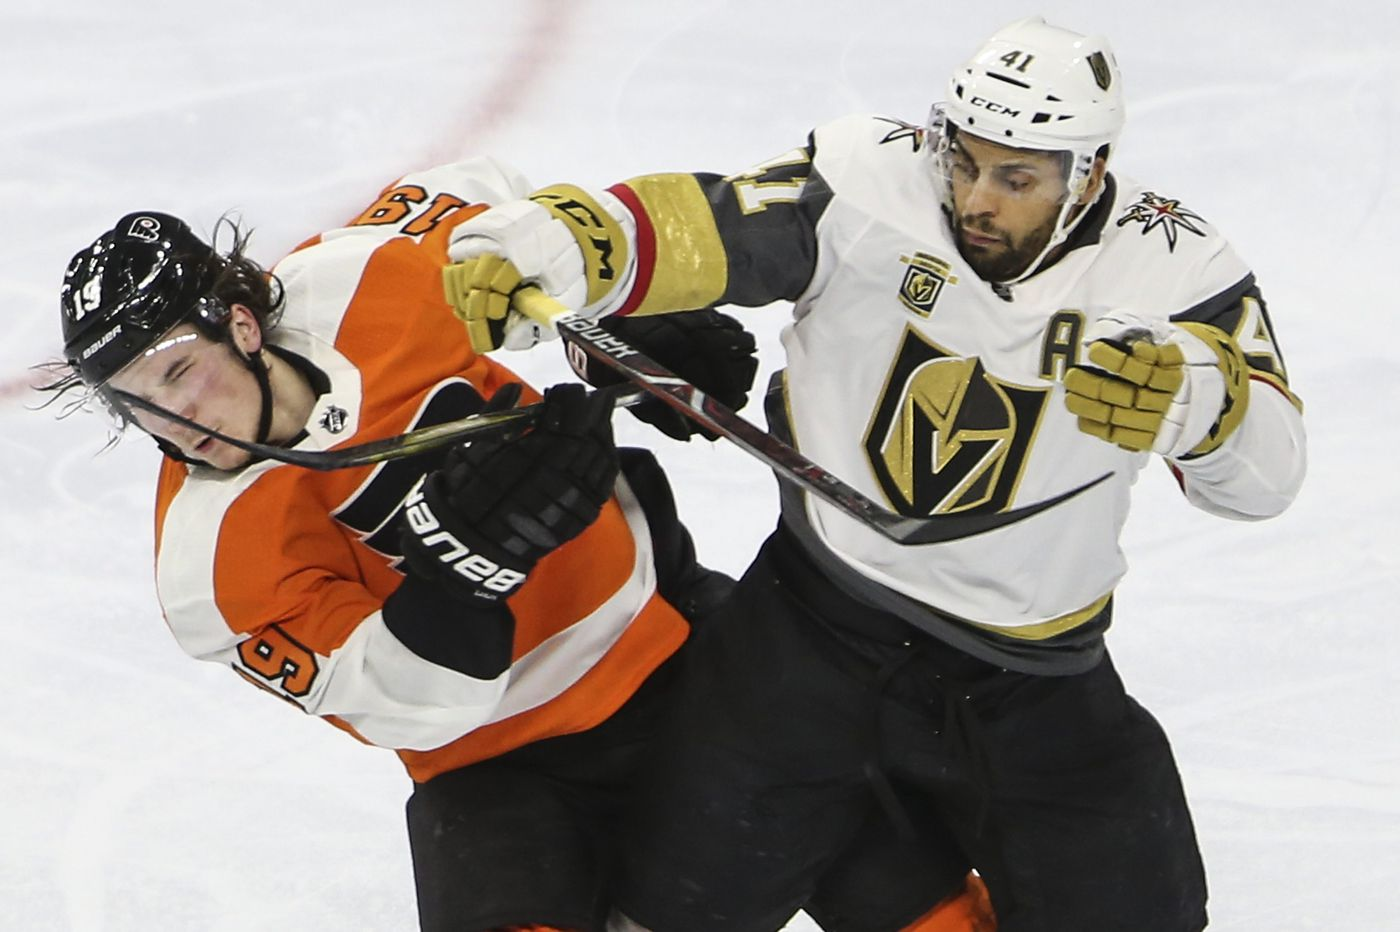 Oddsmakers waste no time making Flyers underdogs and Golden Knights